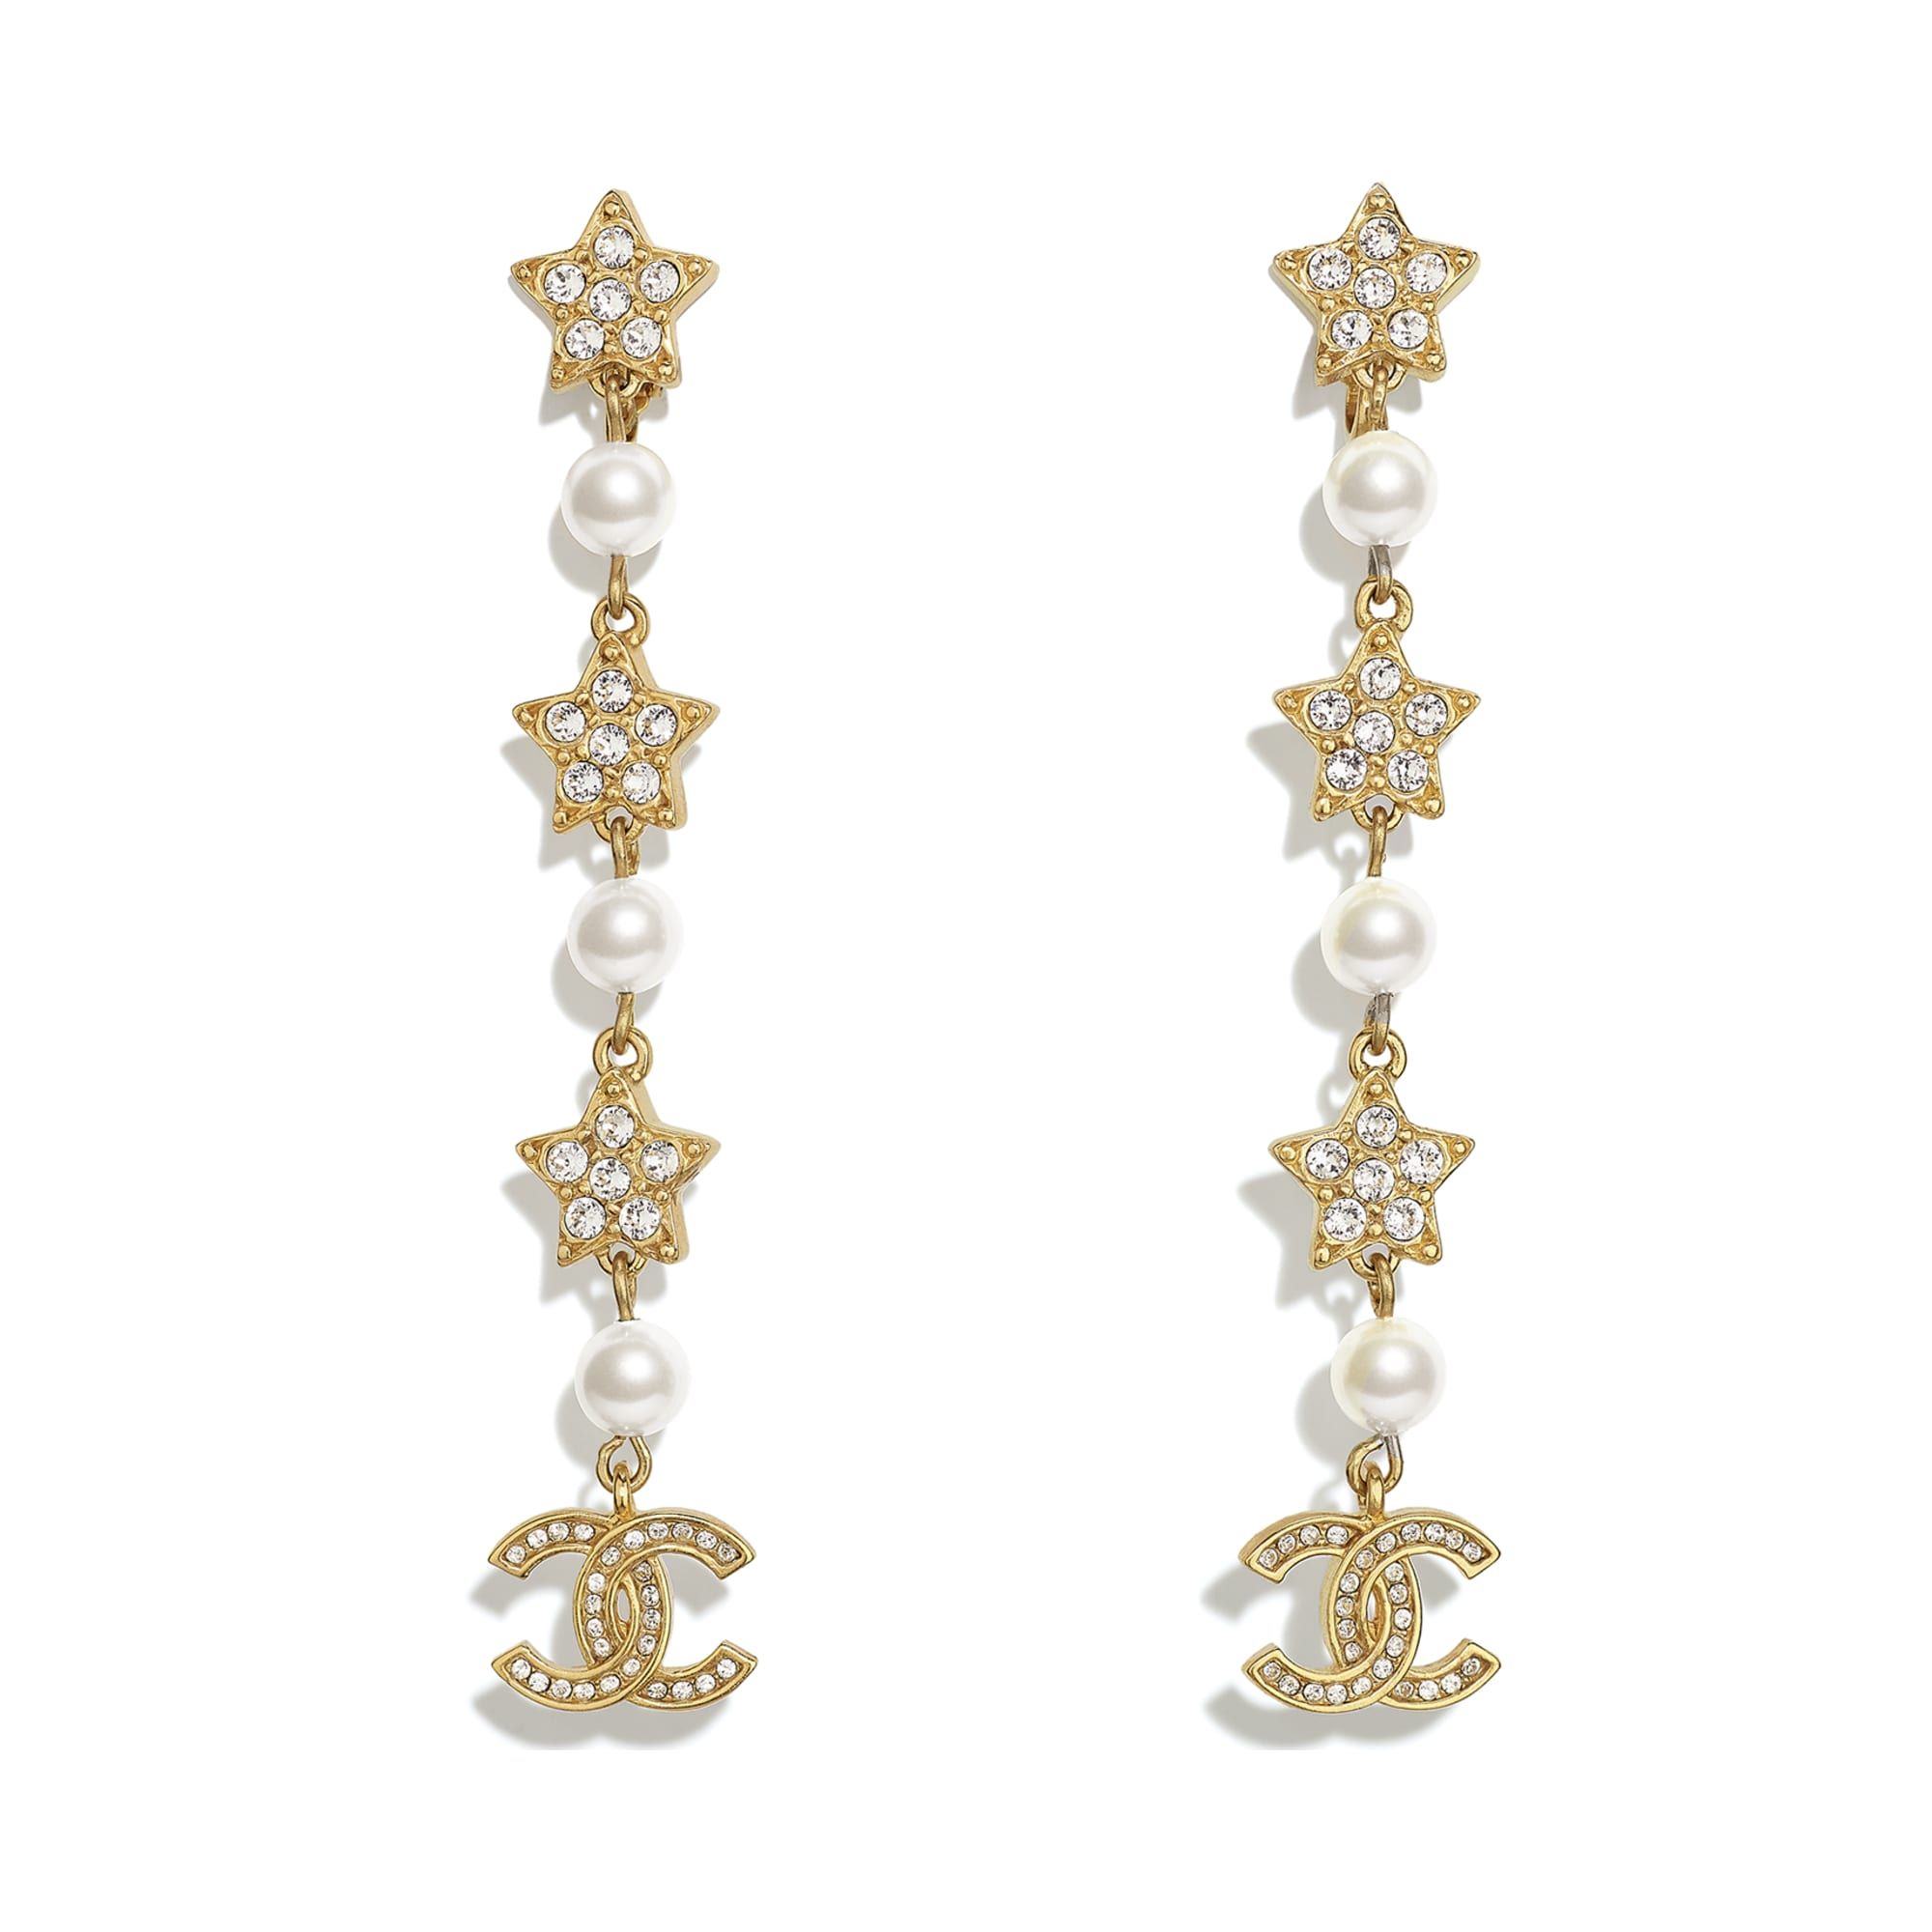 Clip-on Earrings - Gold, Pearly White & Crystal - Metal, Glass Pearls & Strass - CHANEL - Default view - see standard sized version